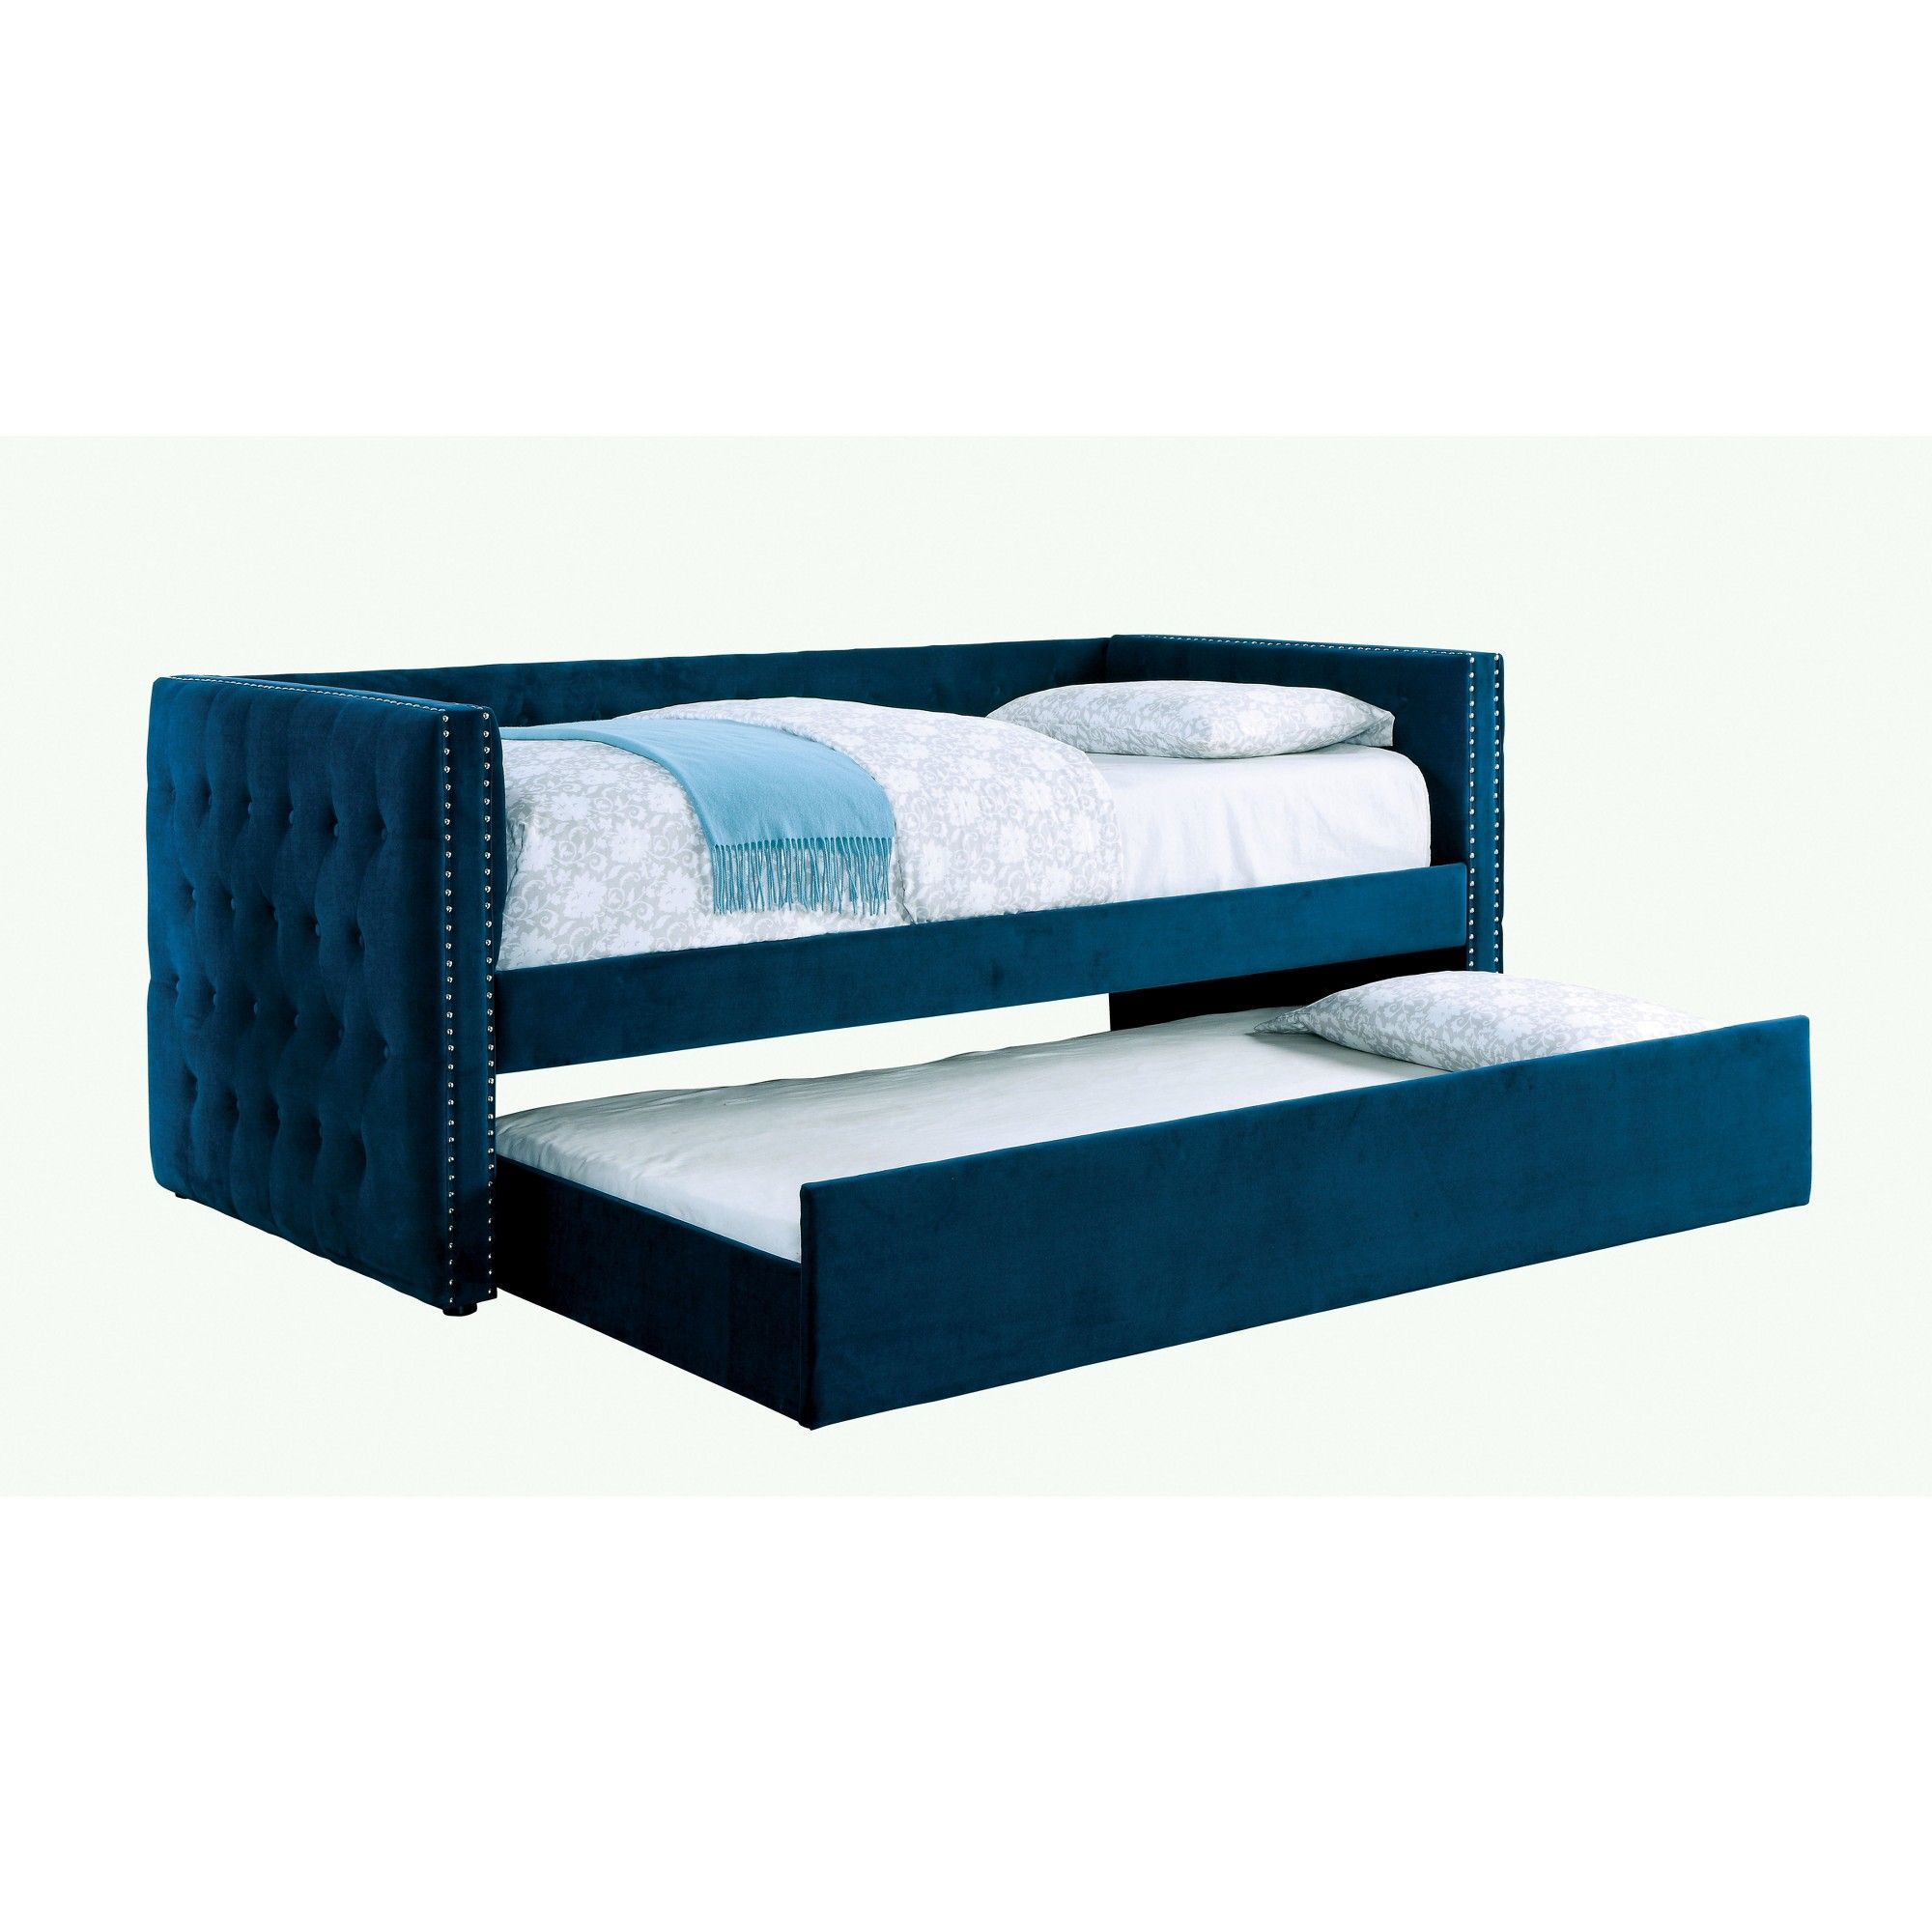 Twin Anton Upholstered Daybed Navy Mibasics Daybed With Trundle Furniture Of America Upholstered Daybed